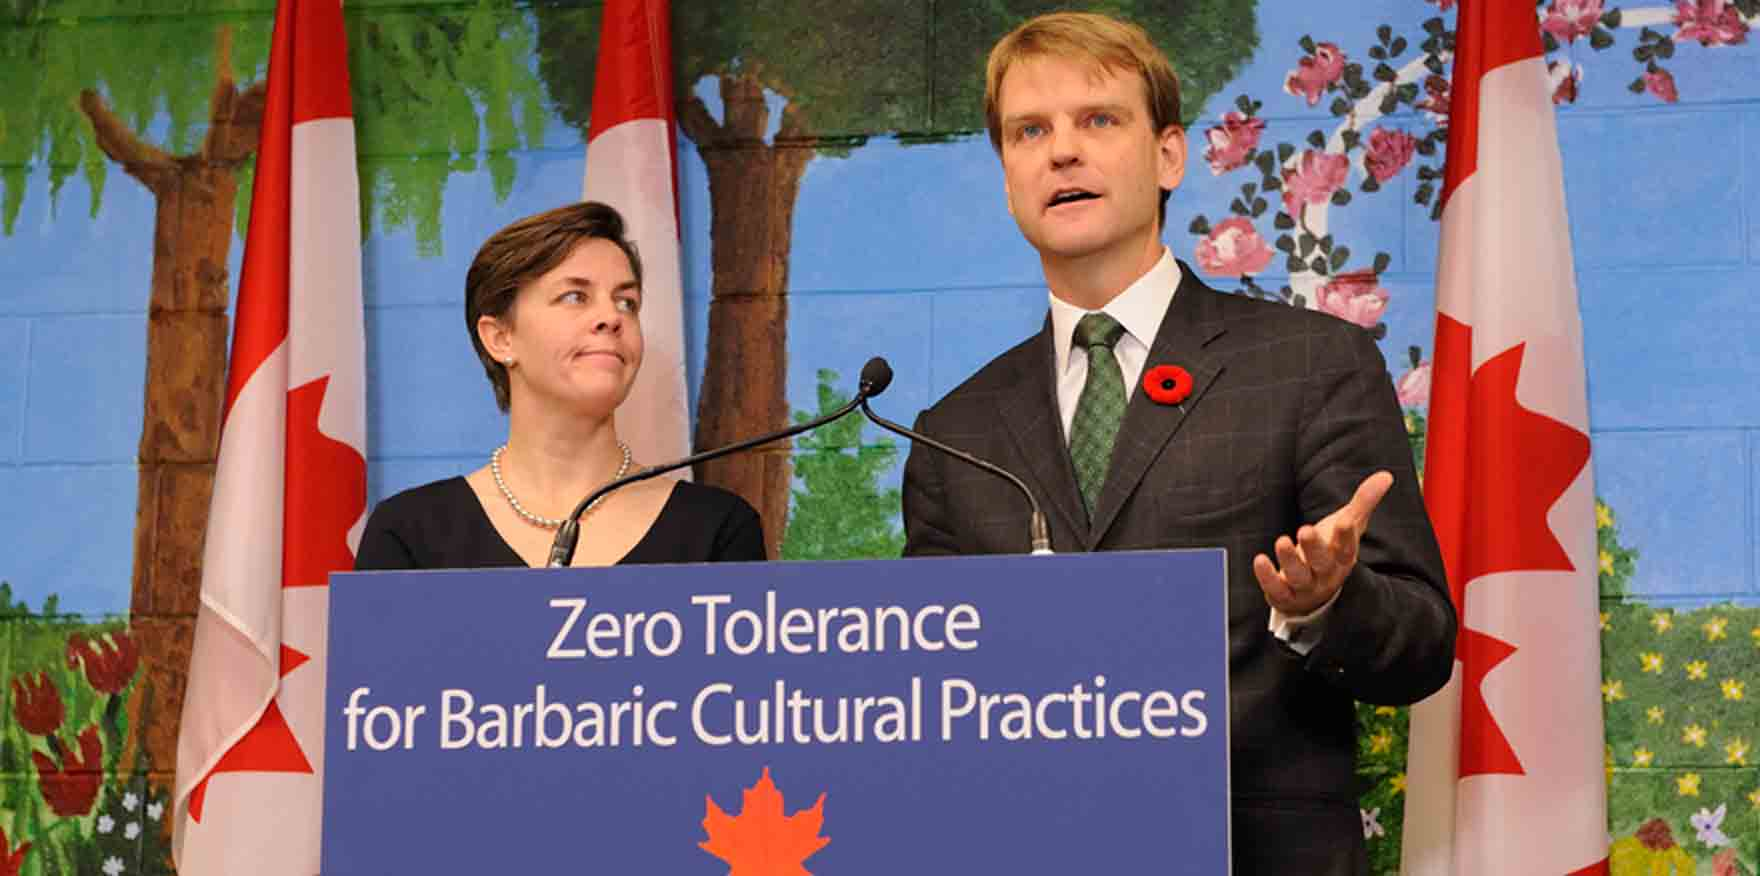 Canadian Senate Approves Bill Removing Term 'barbaric cultural practices' from Previous Law